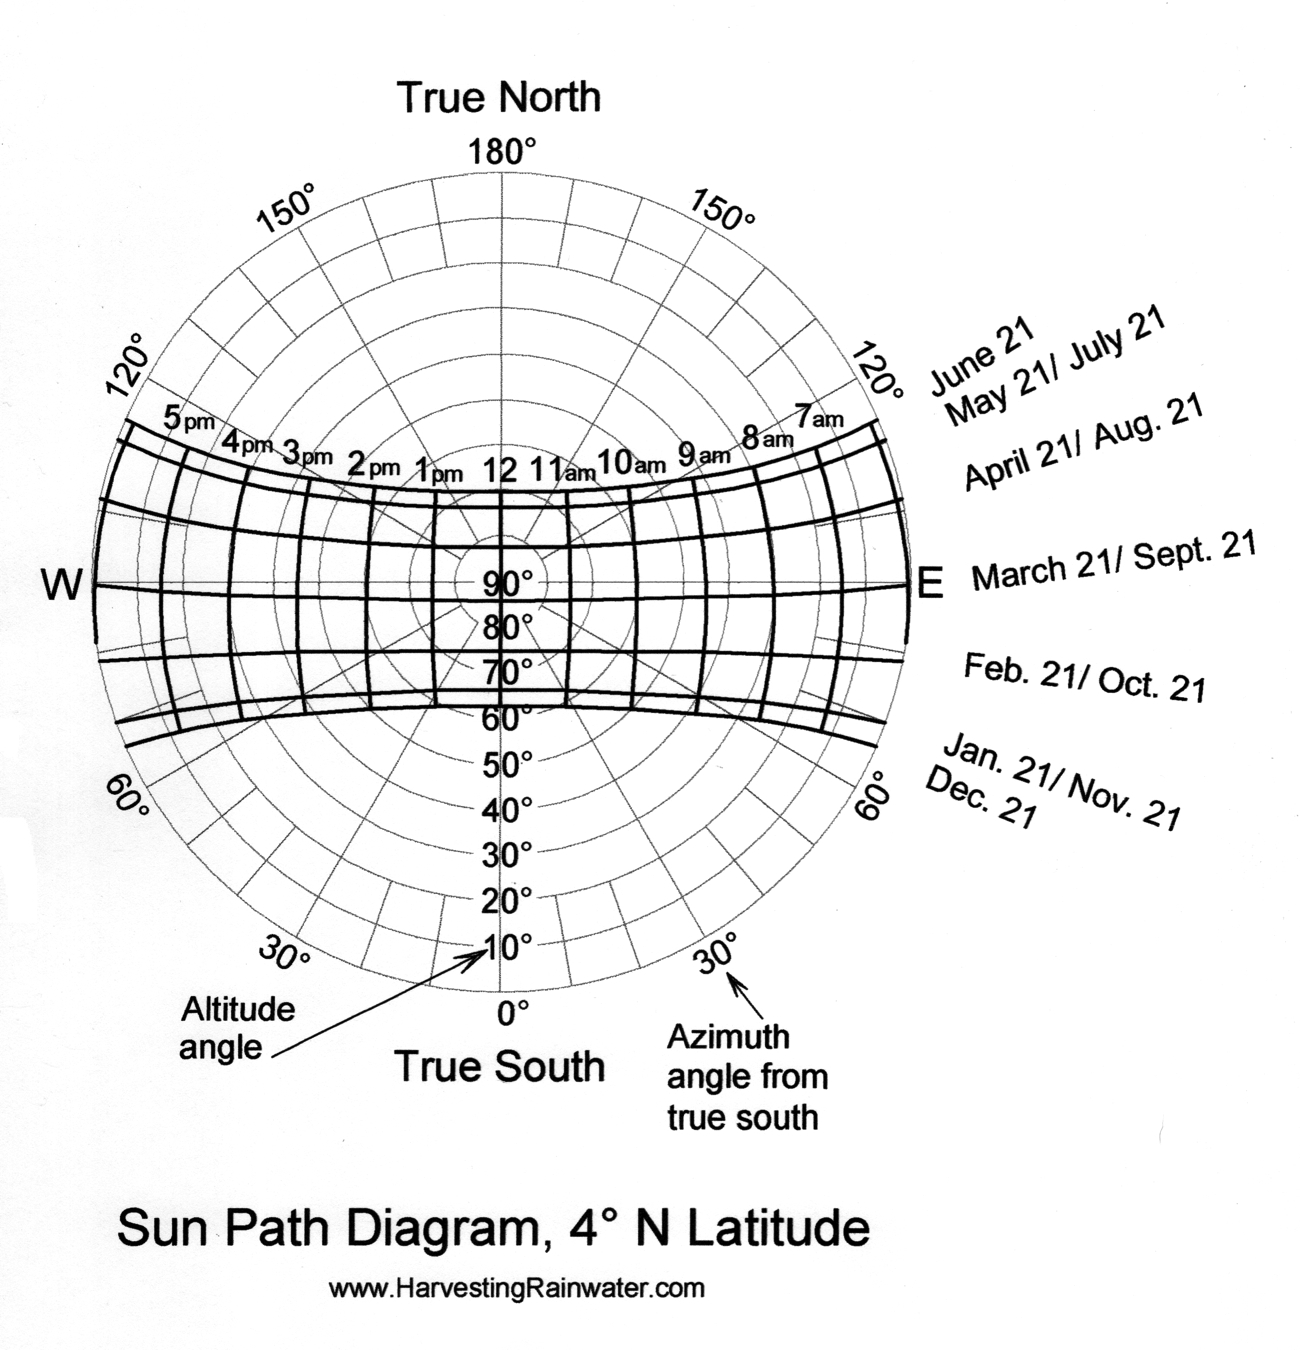 Sun Path Diagram 4o N Latitude